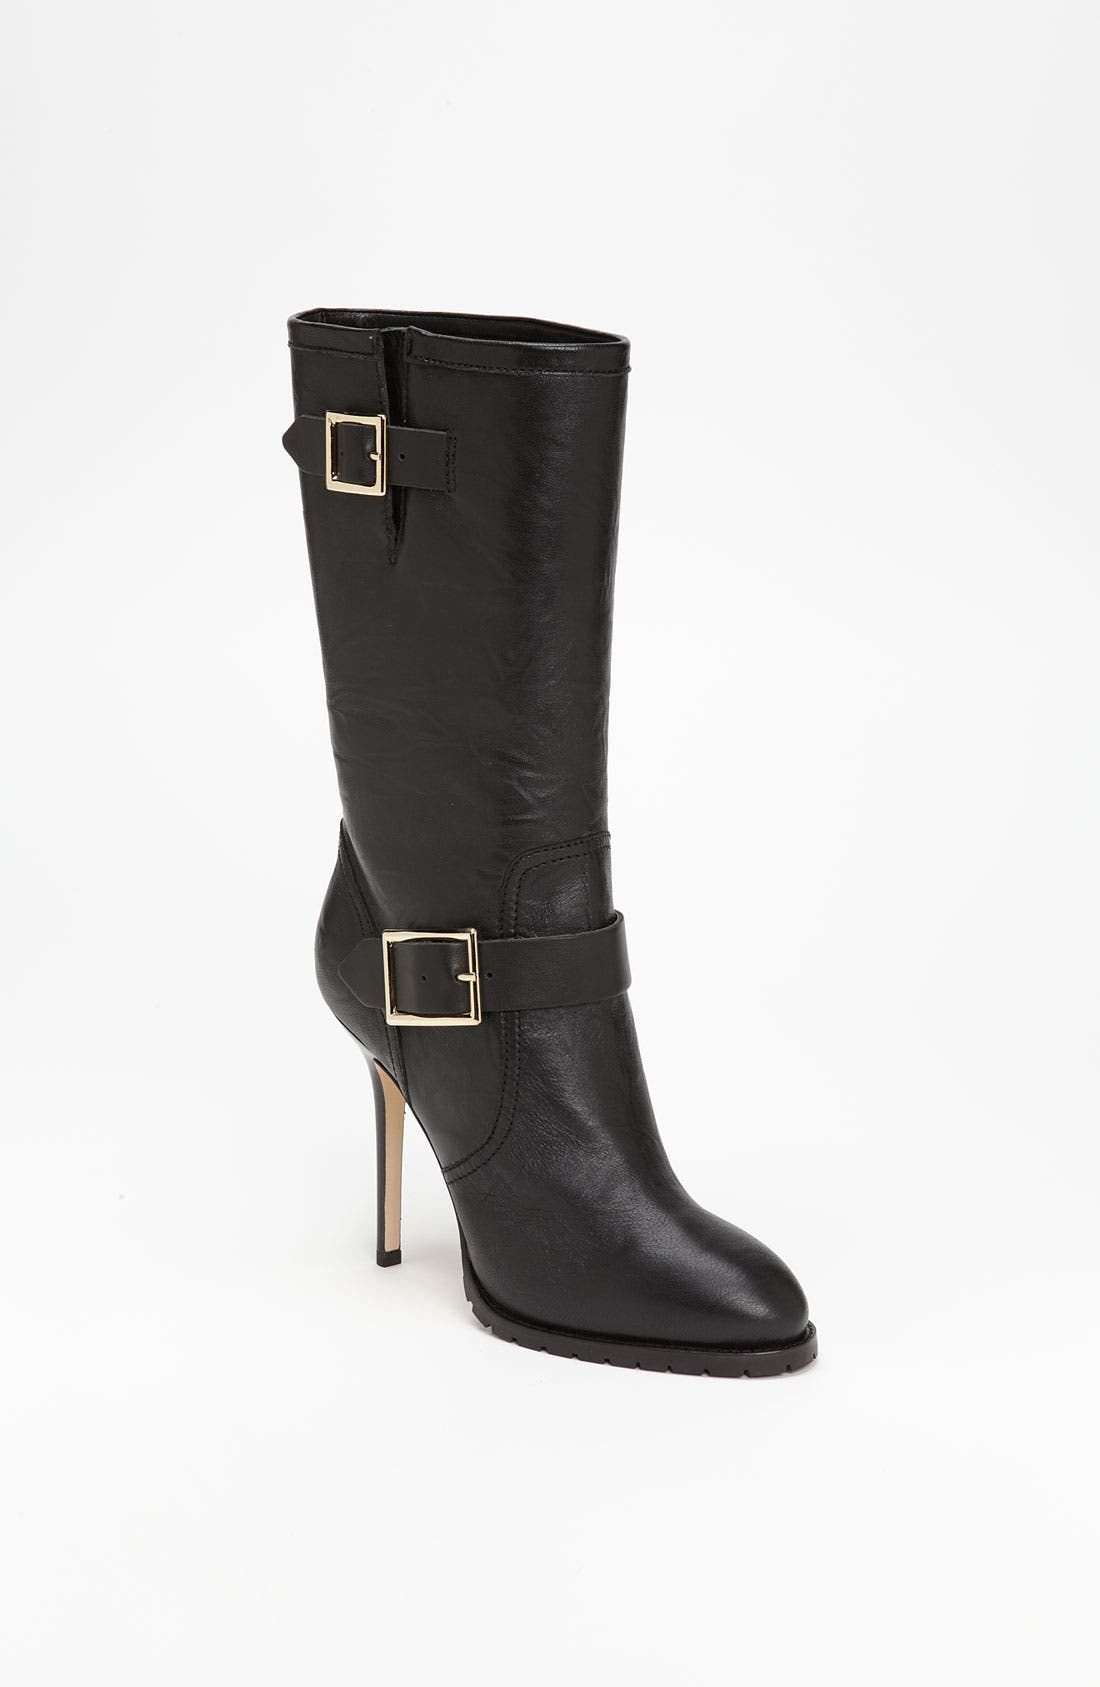 Alternate Image 1 Selected - Jimmy Choo 'Galen' Boot